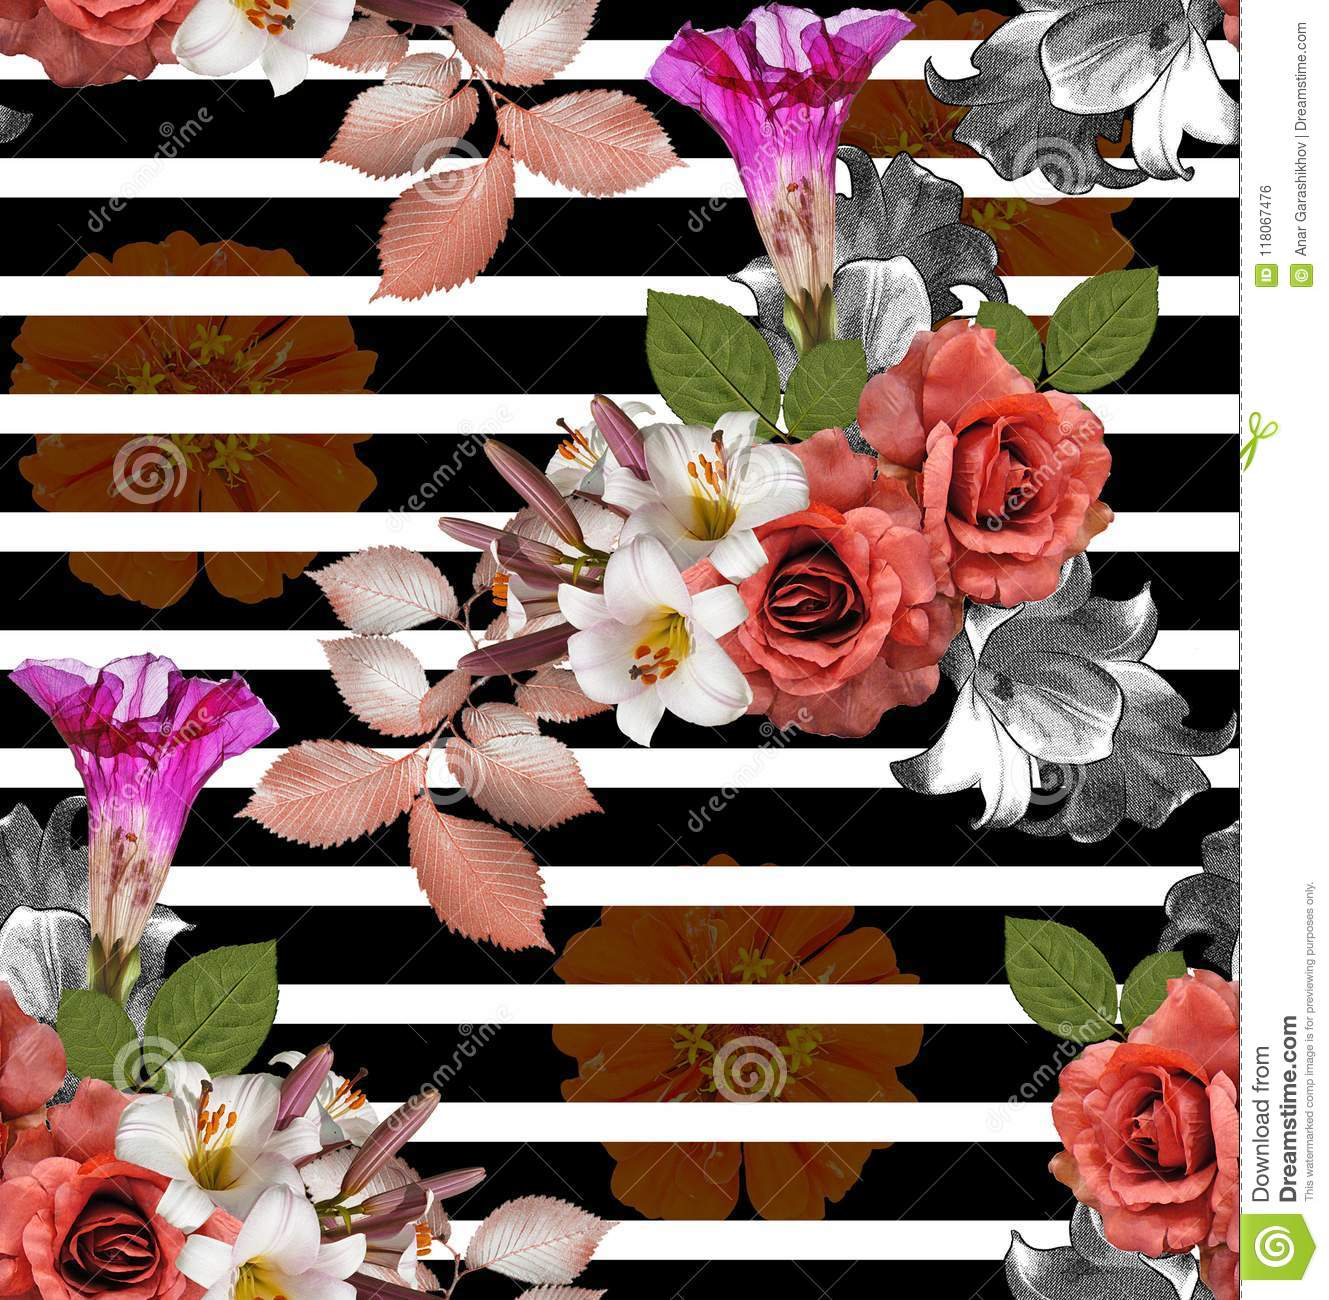 Seamless flowers with striped roses with lily and zinnia on bla seamless flowers with striped roses with lily and zinnia on bla izmirmasajfo